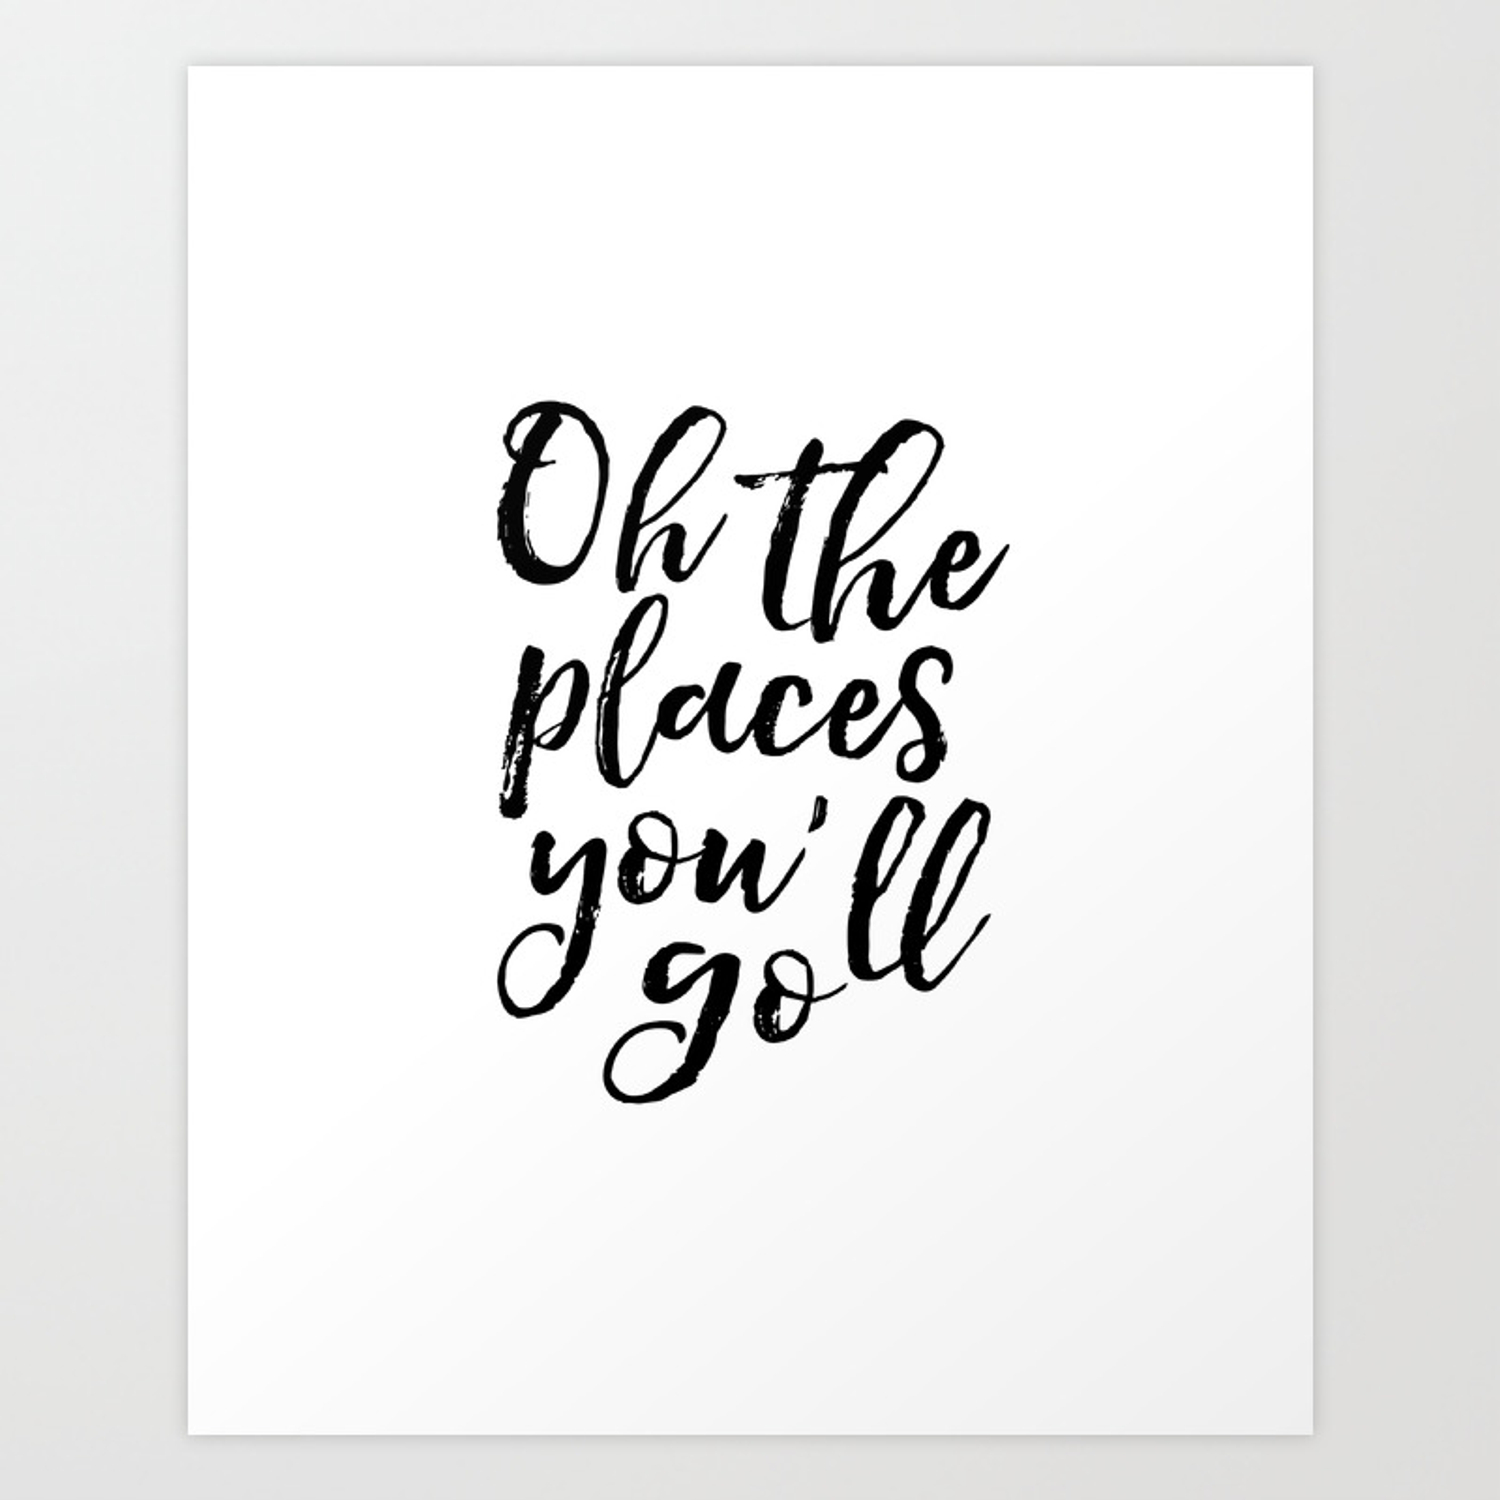 graphic about Oh the Places You'll Go Printable named Typography Print Printable Wall Artwork Oh the Spots Youll Shift Nursery Decor Stylish Experience Generate Artwork Print